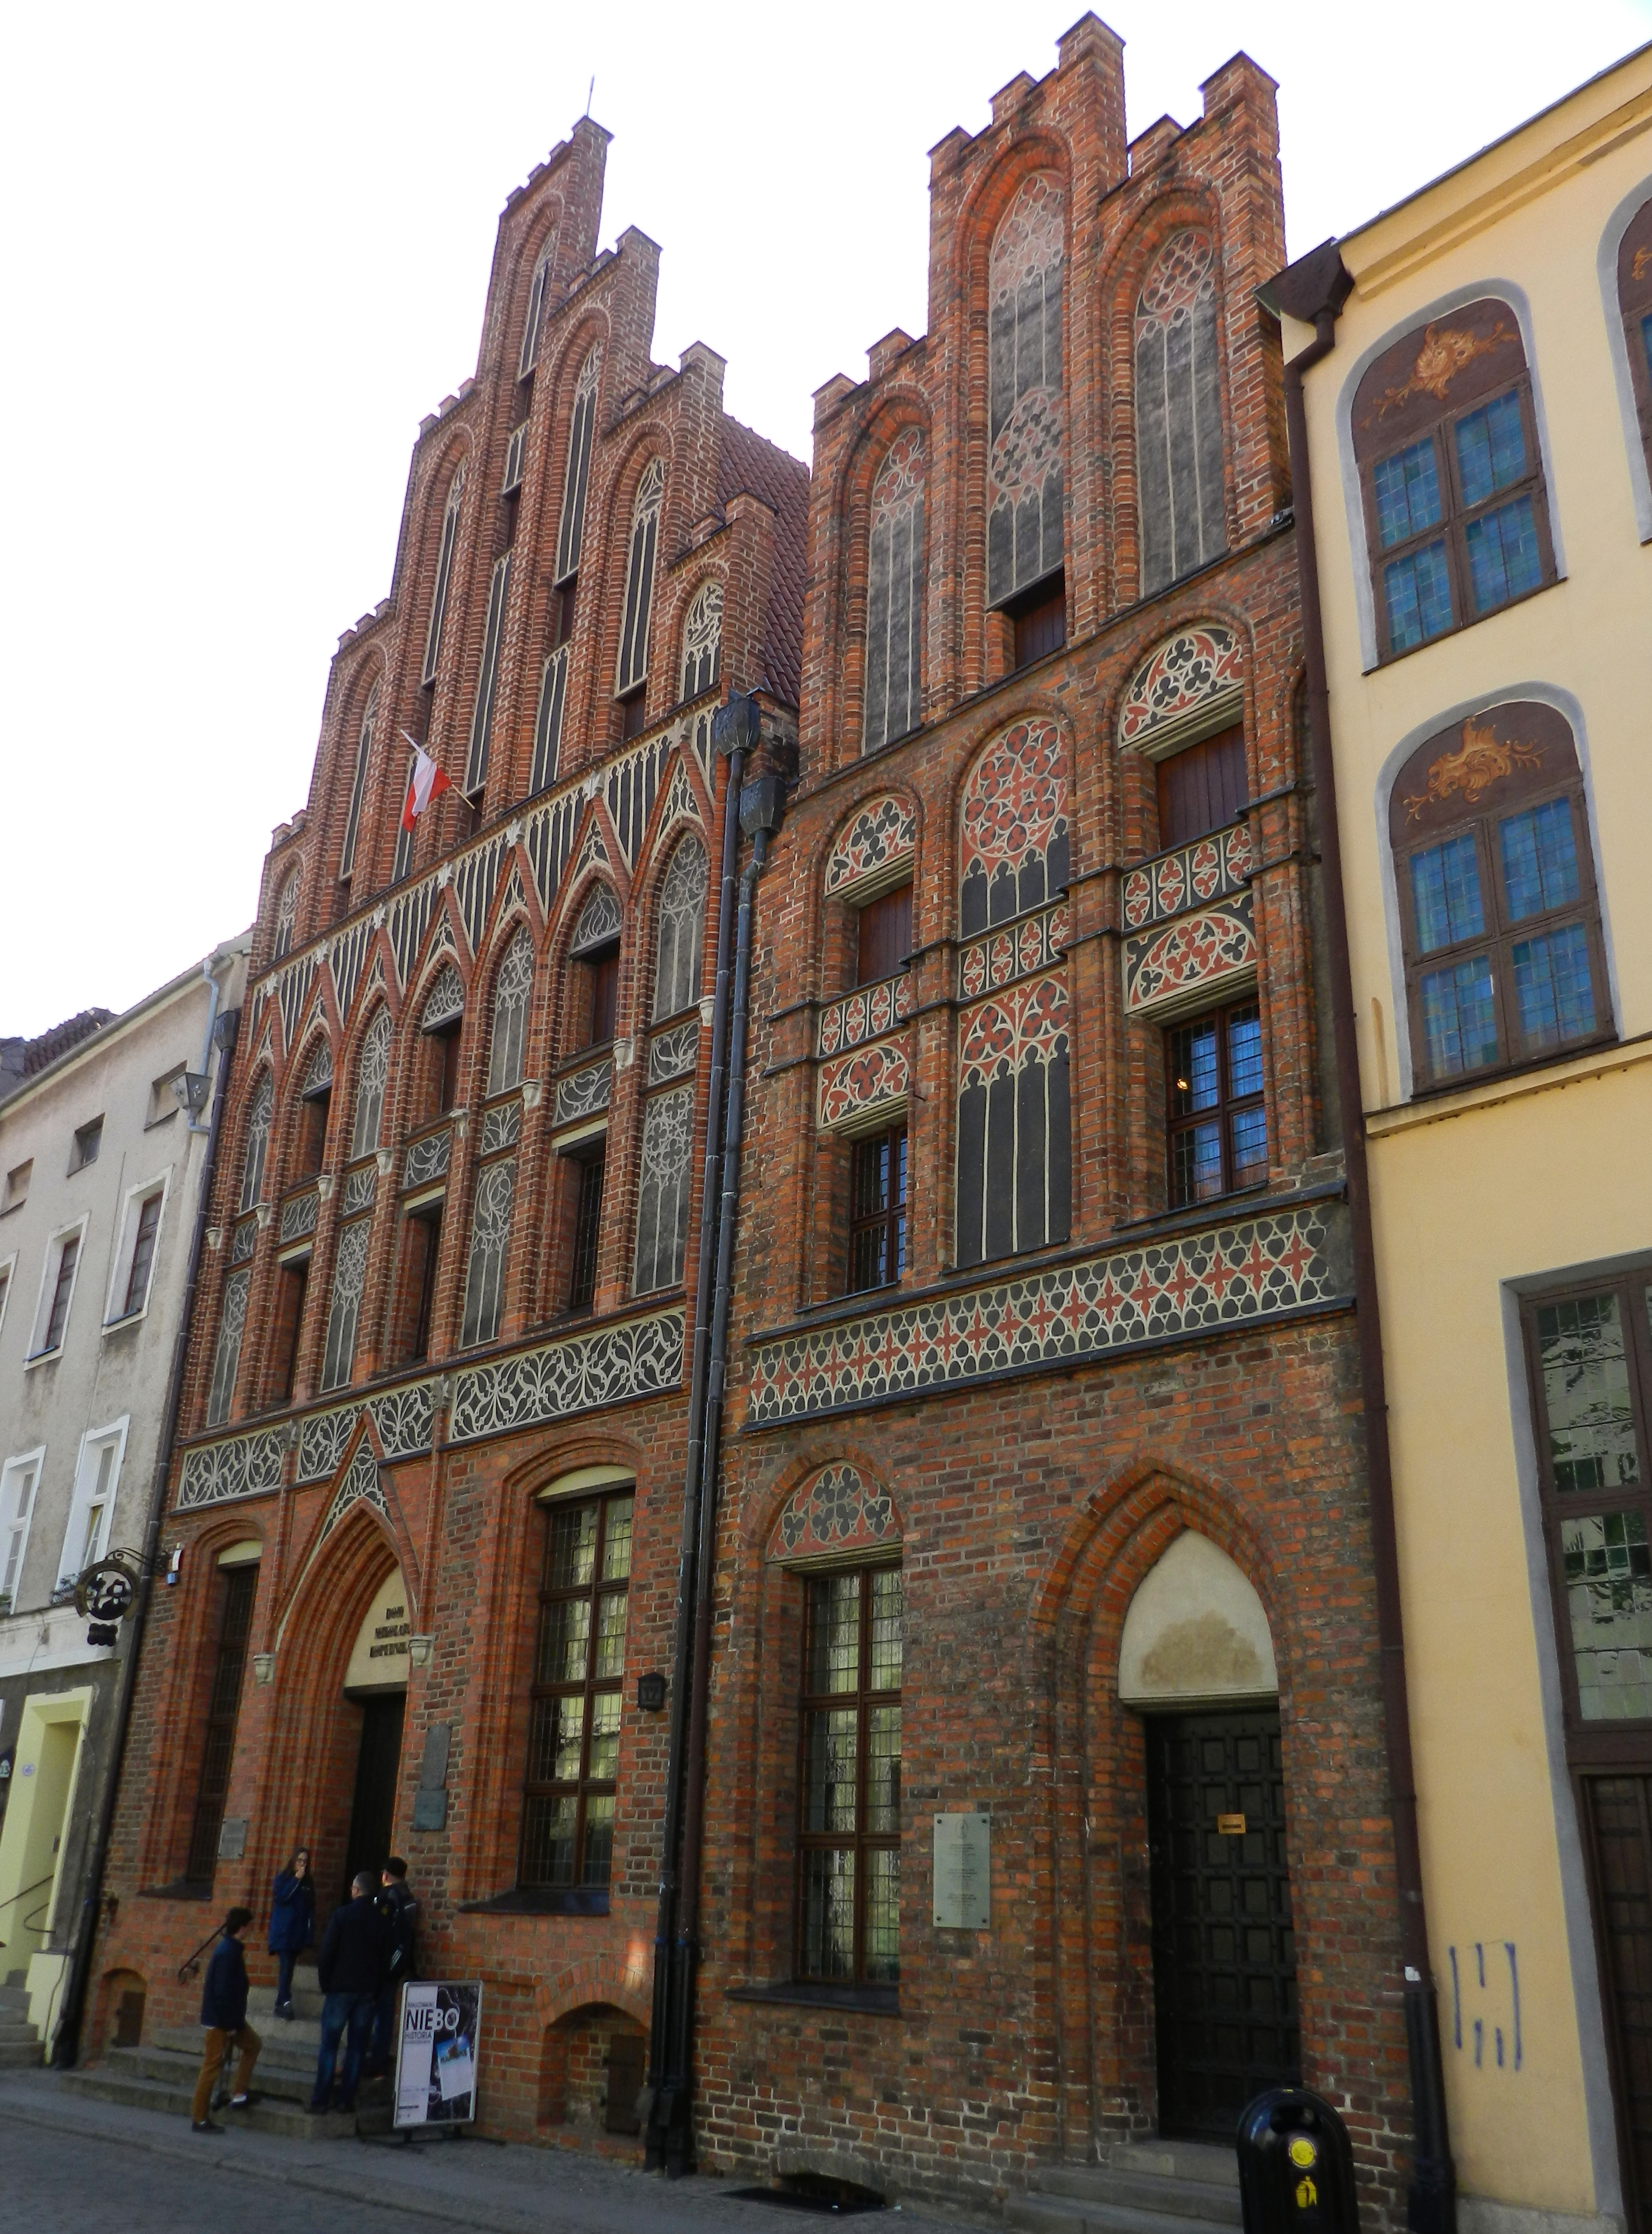 Copernicus House in Toruń: Some of Use are Looking at the Stars